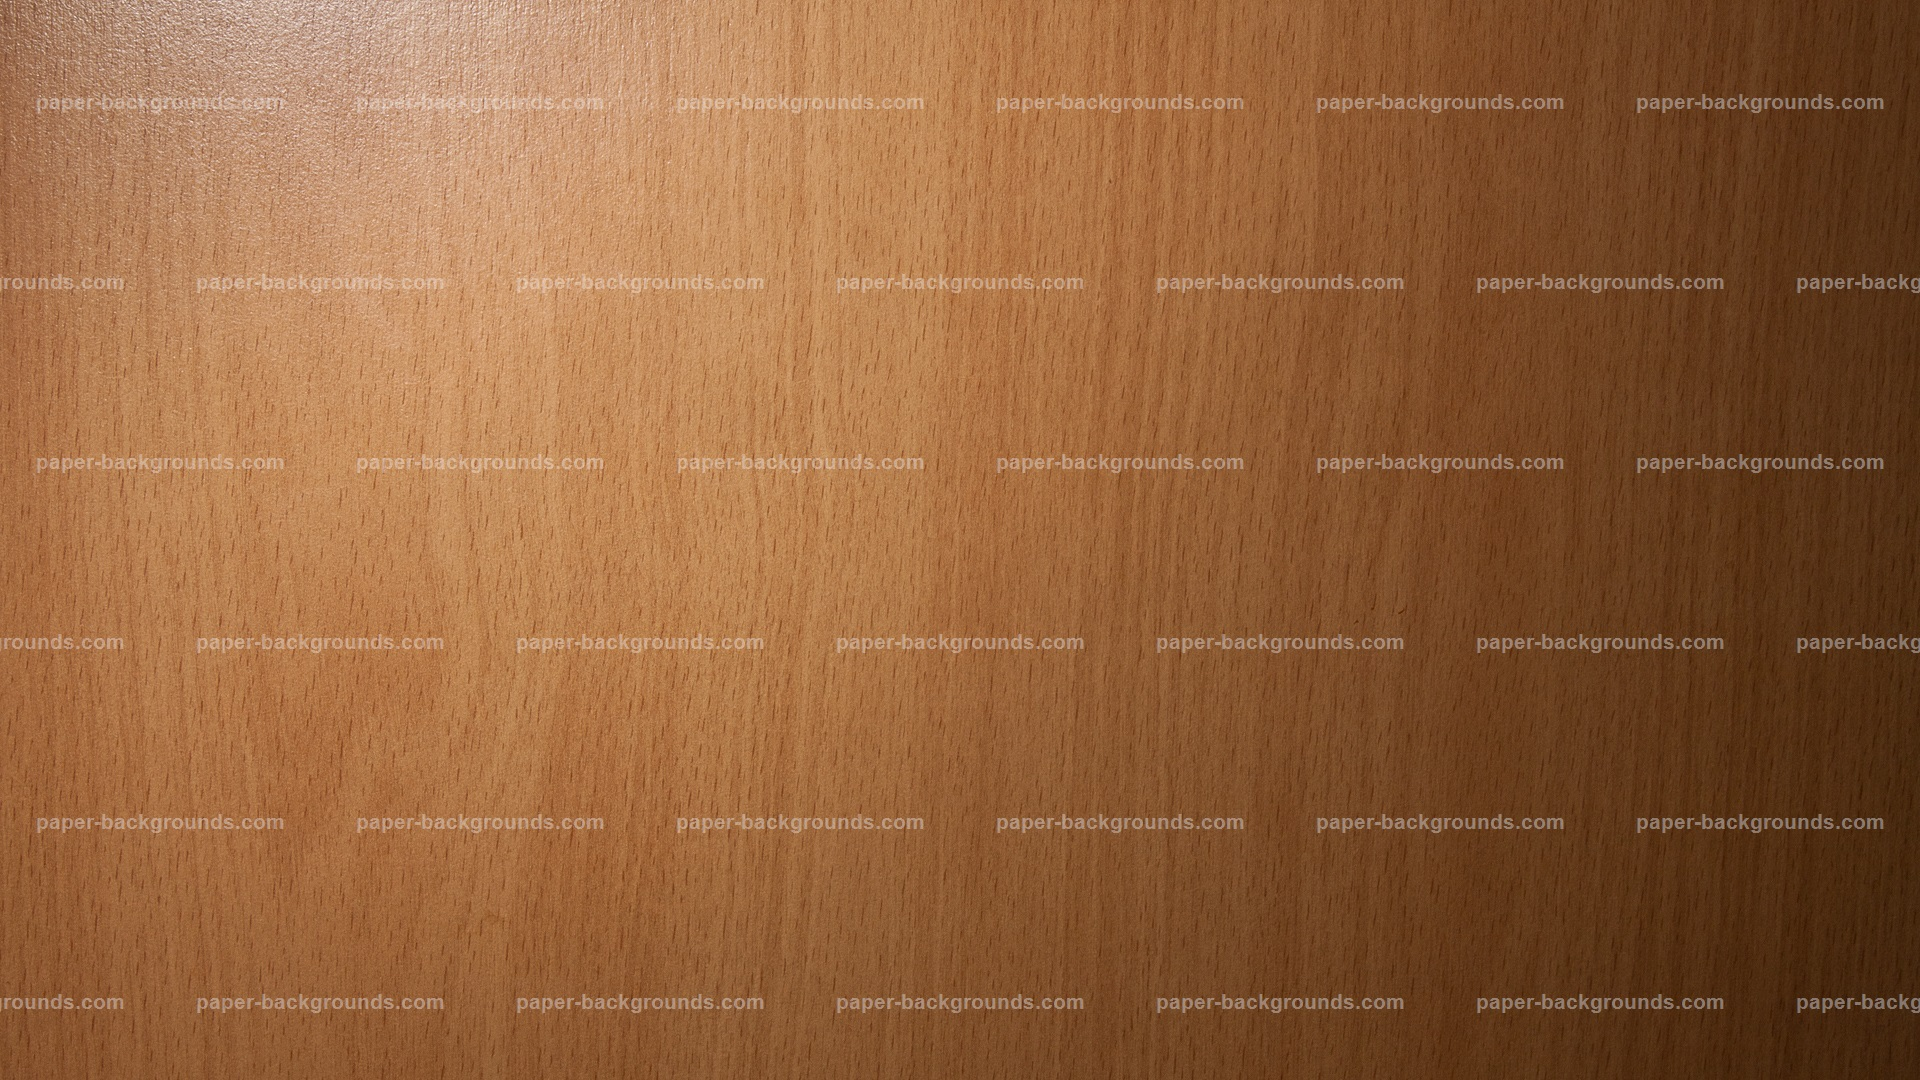 Brown Wood Textured Material Background HD